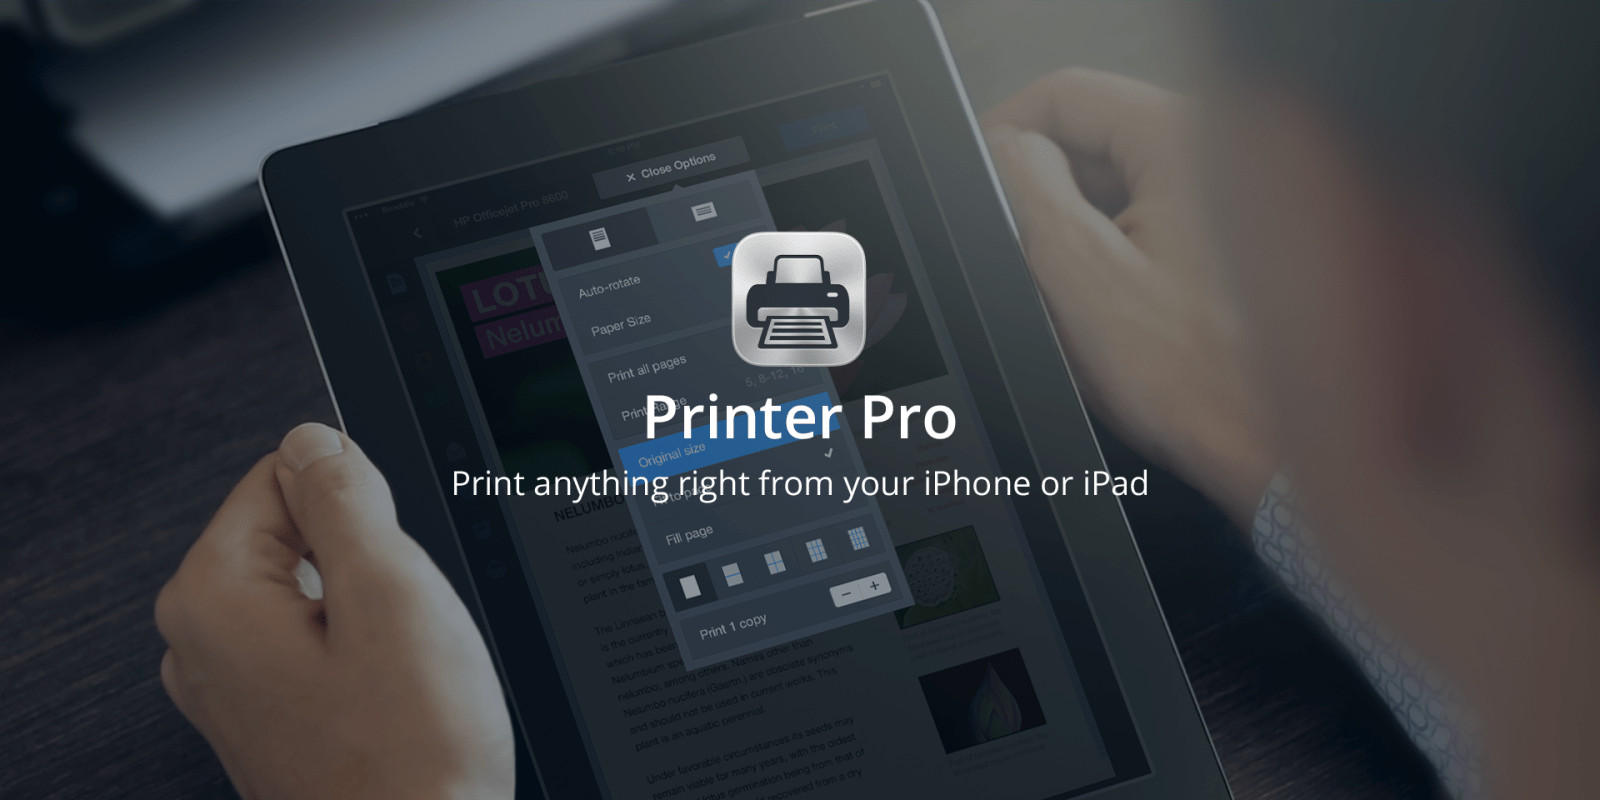 Readdle's popular Printer Pro for iOS goes FREE for the first time in years (Reg. $7)